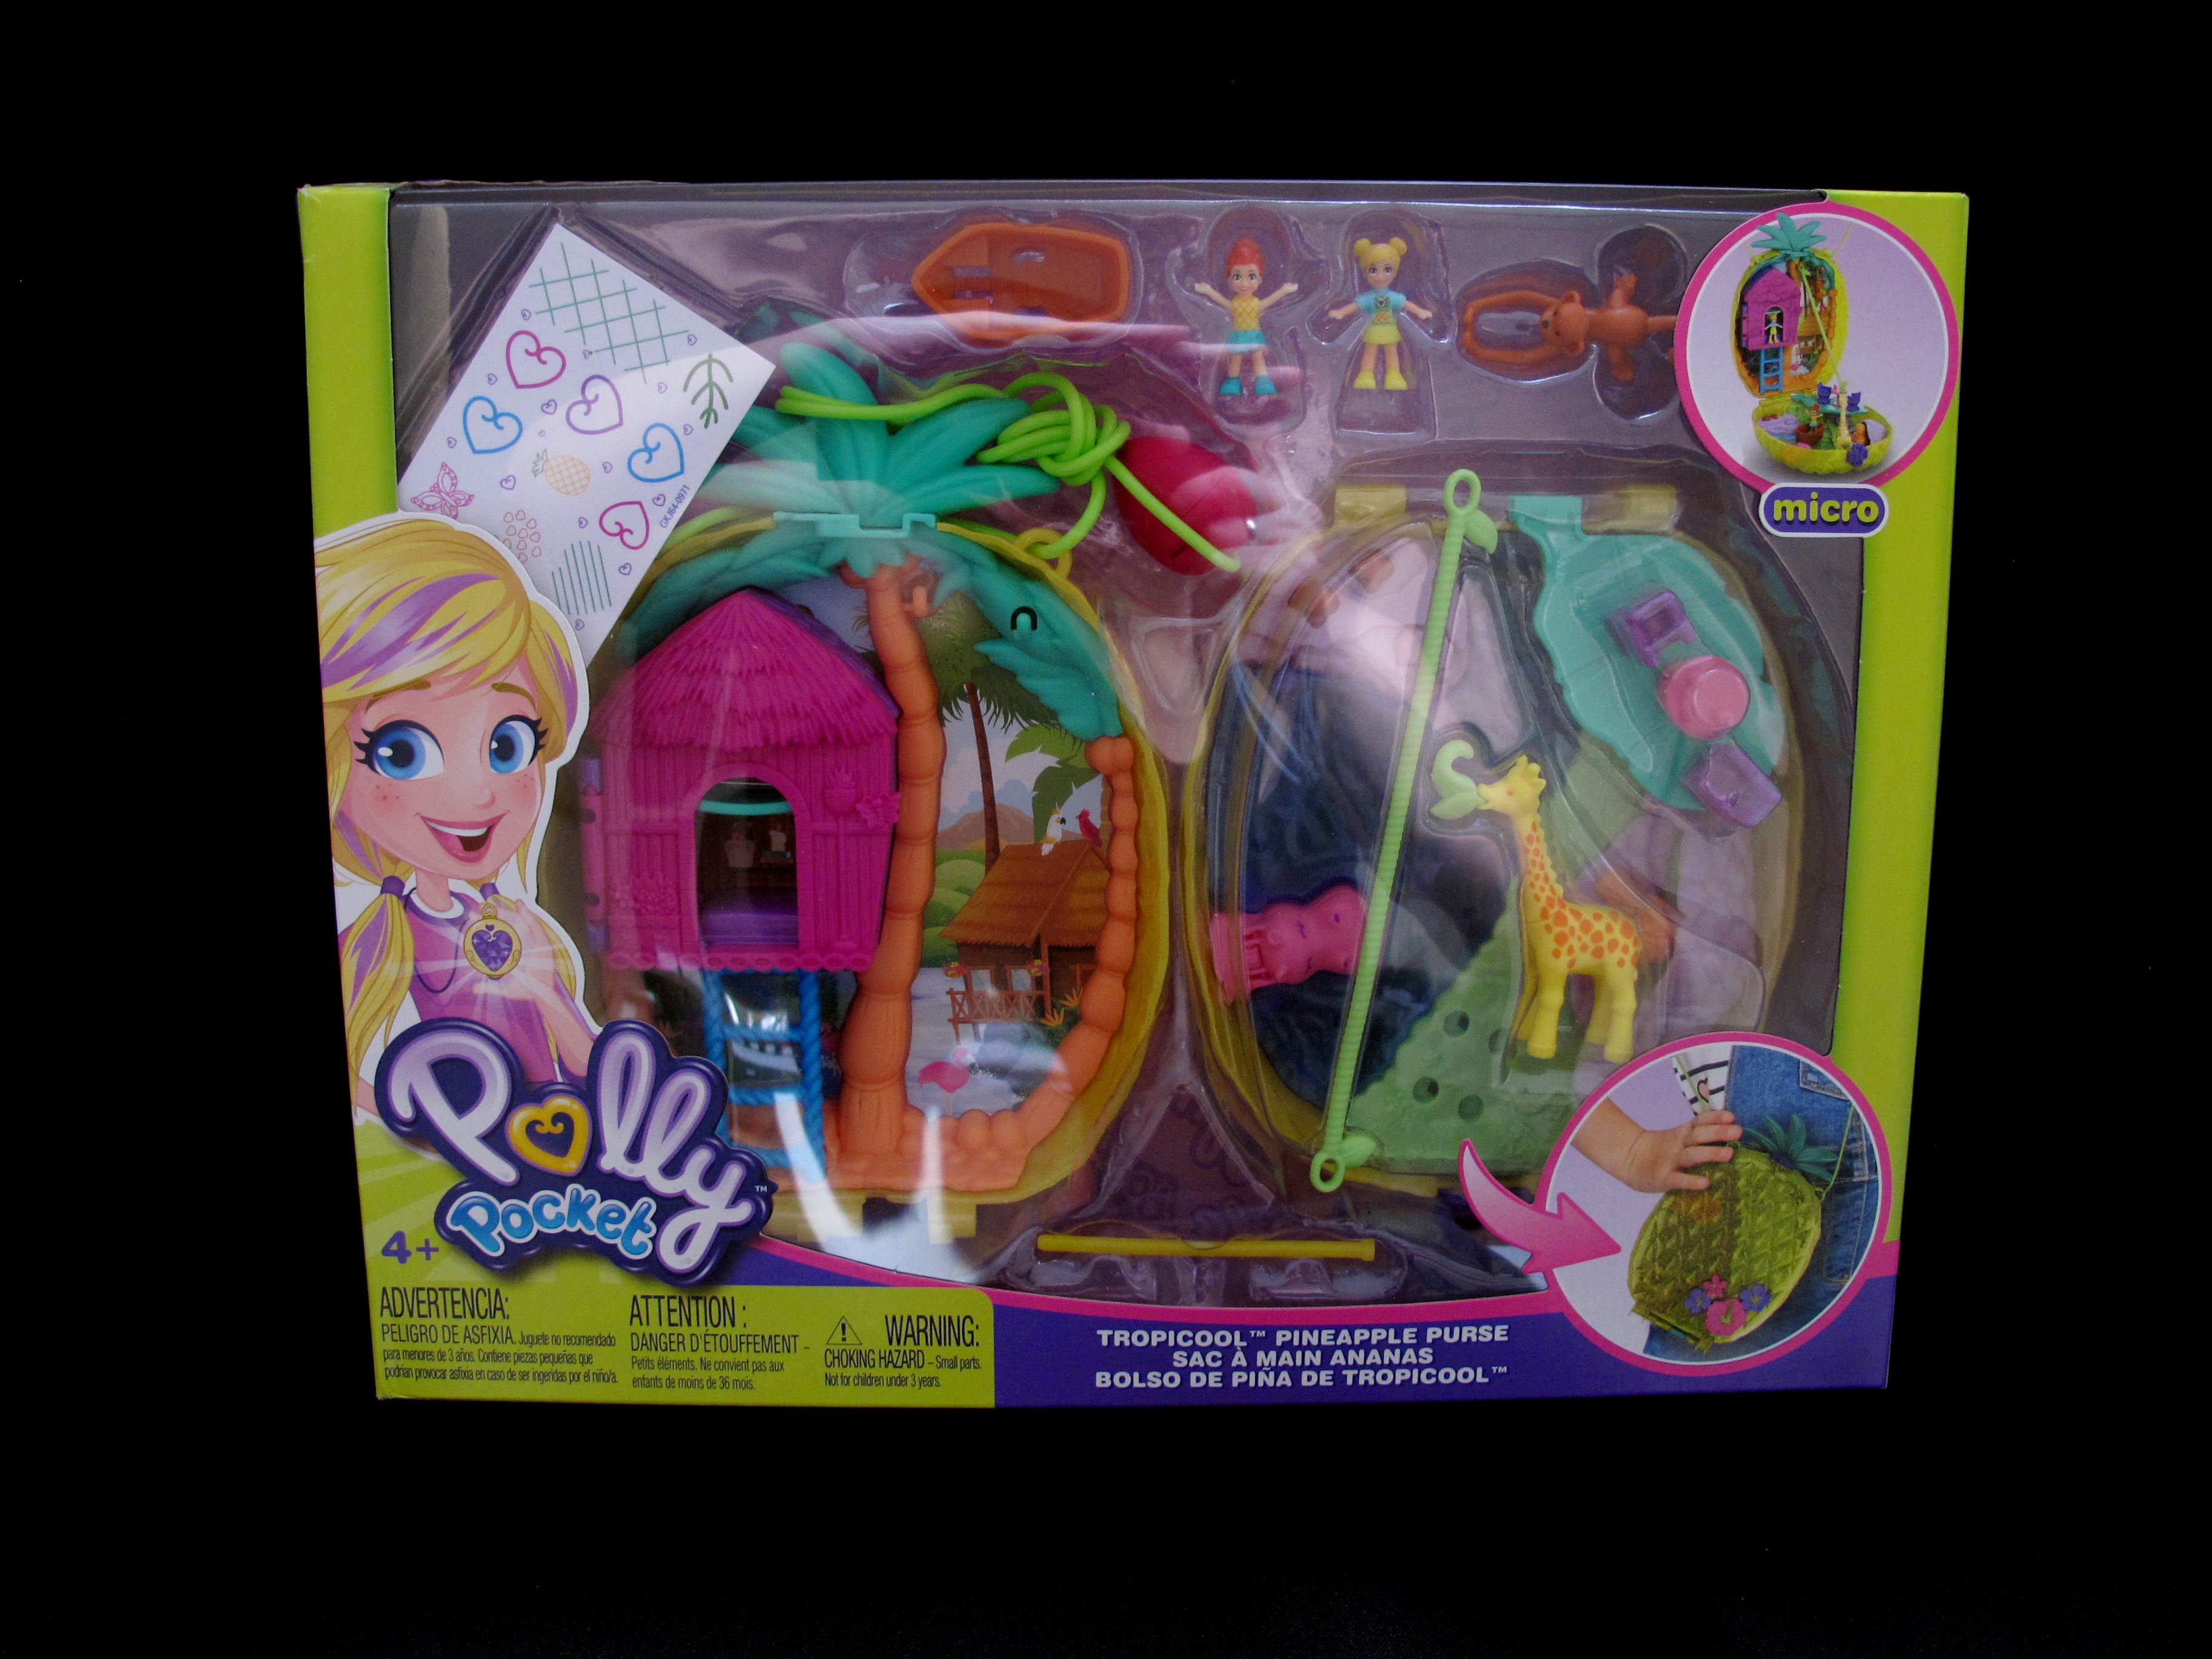 2019 Tropicool Pineapple Purse Polly Pocket (1).jpg